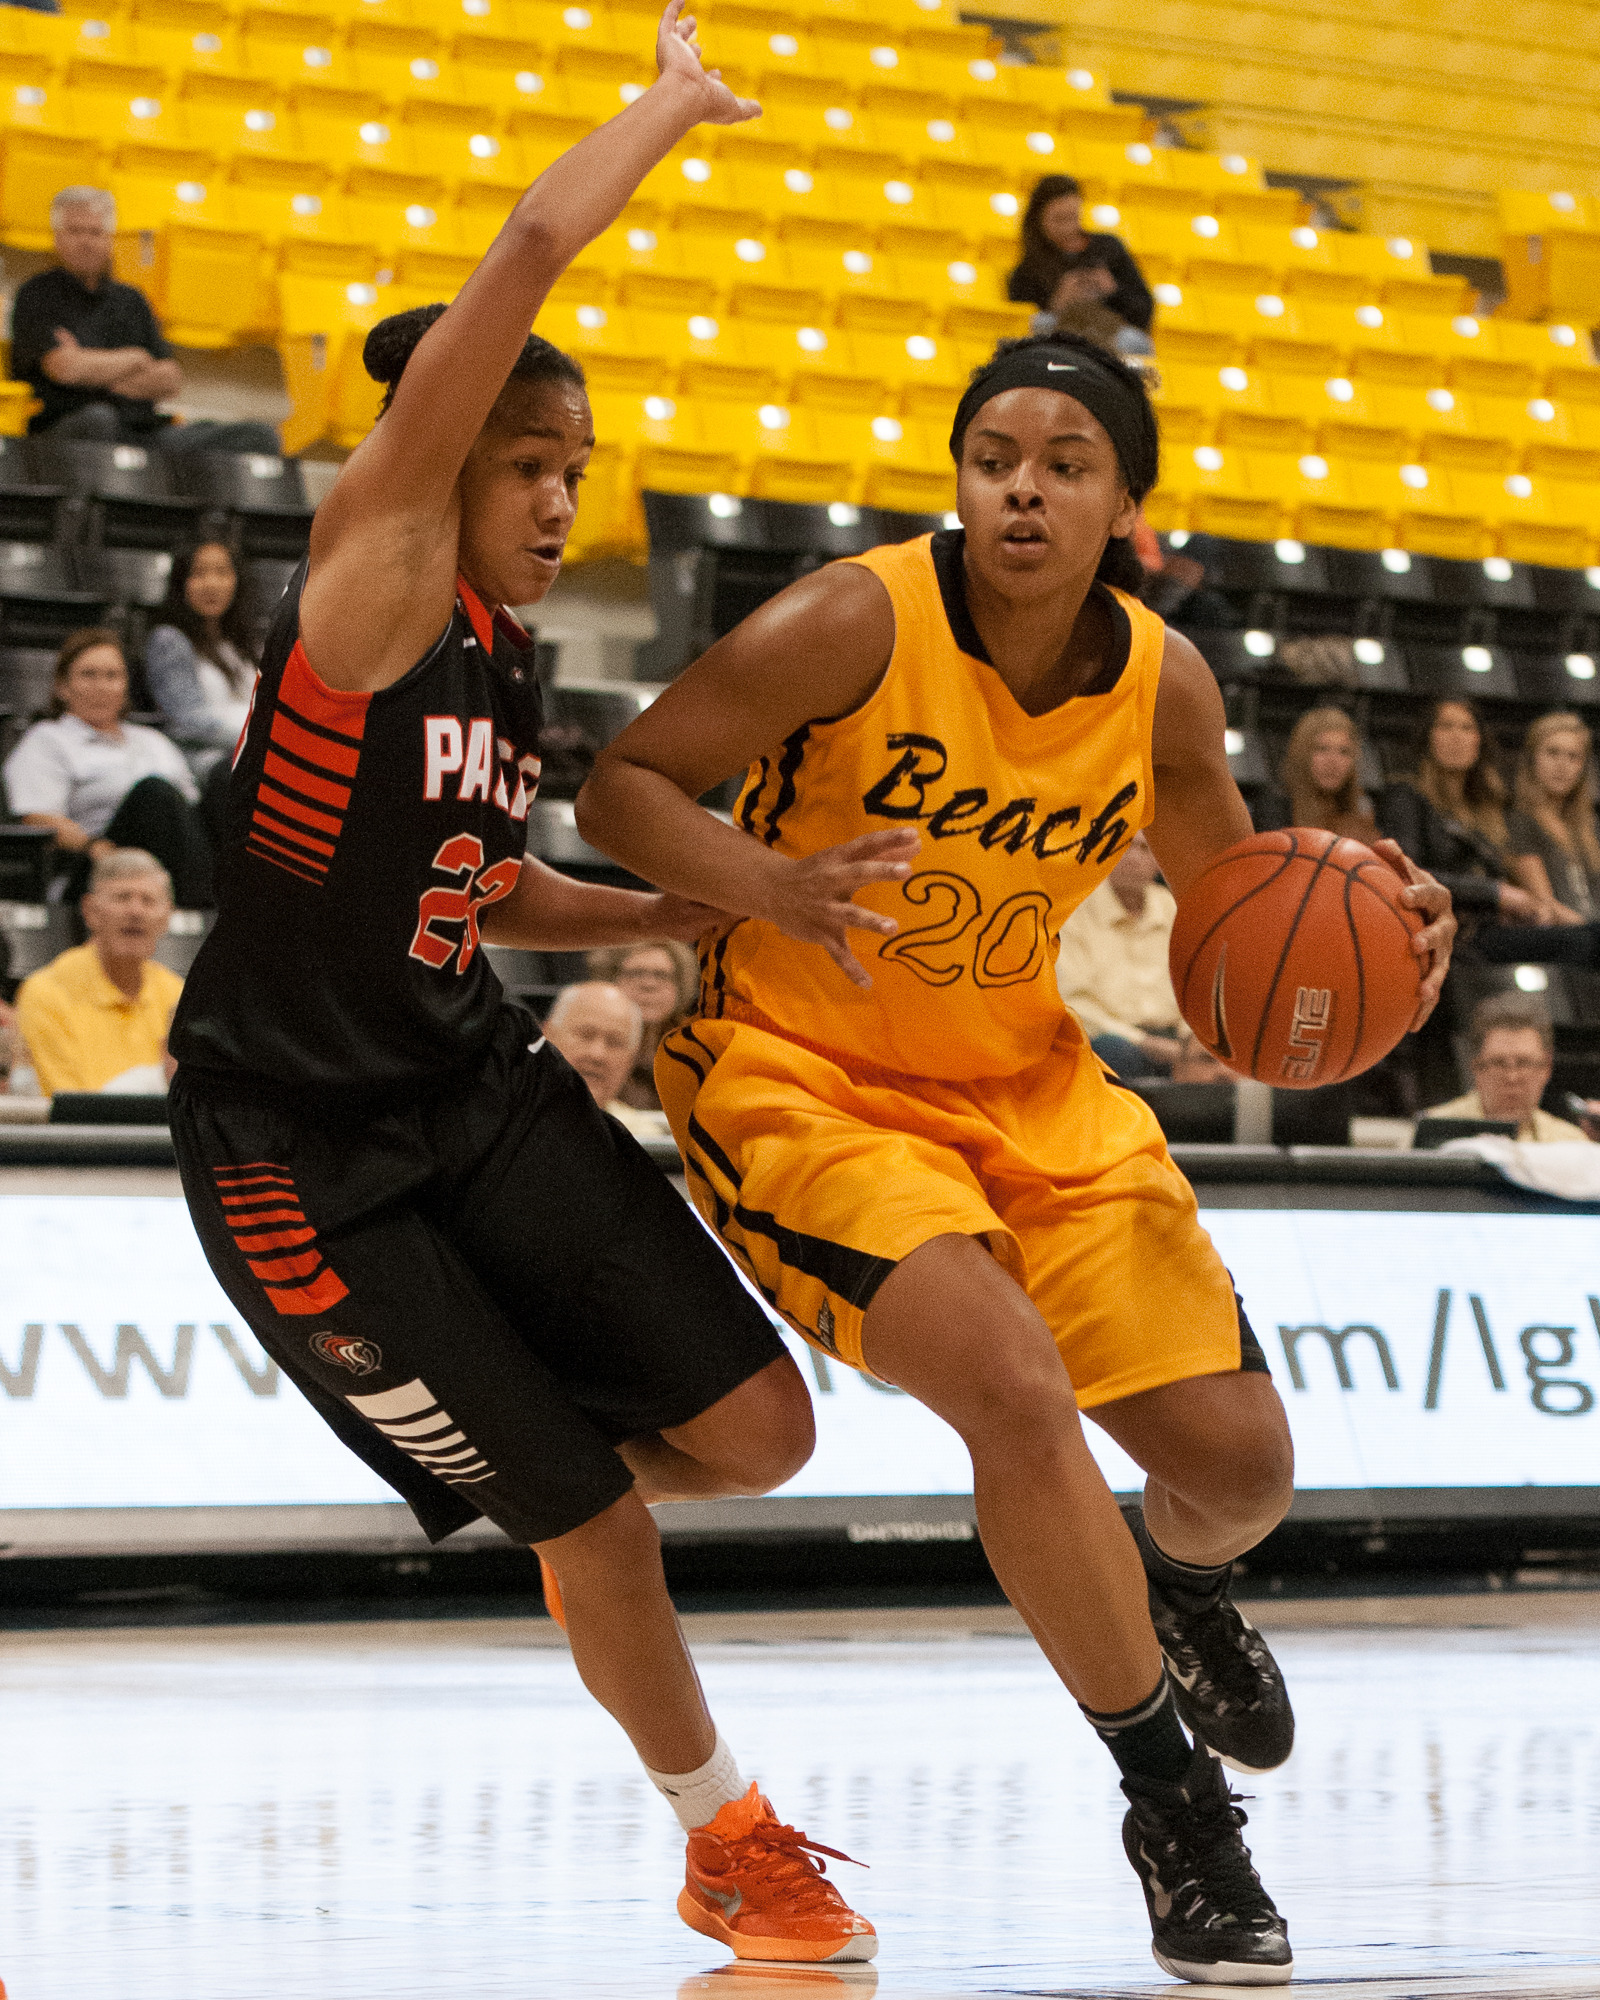 Sophomore Raven Benton scored 15 of her game-high 18 points in the second half to lift LBSU to a 53-43 victory over Pacific.